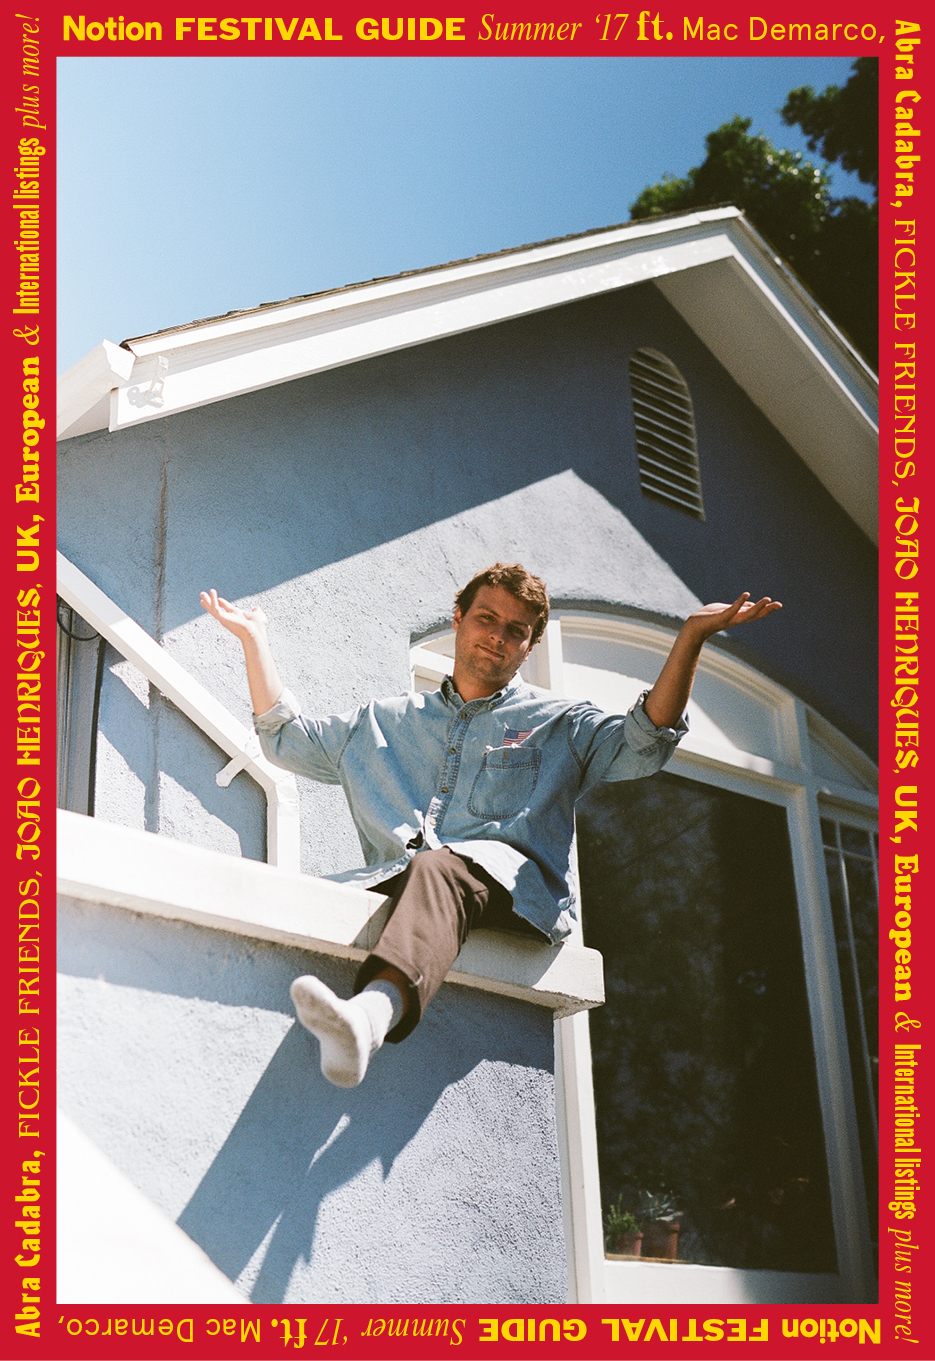 Mac DeMarco - Notion magazine festival guide cover.JPG